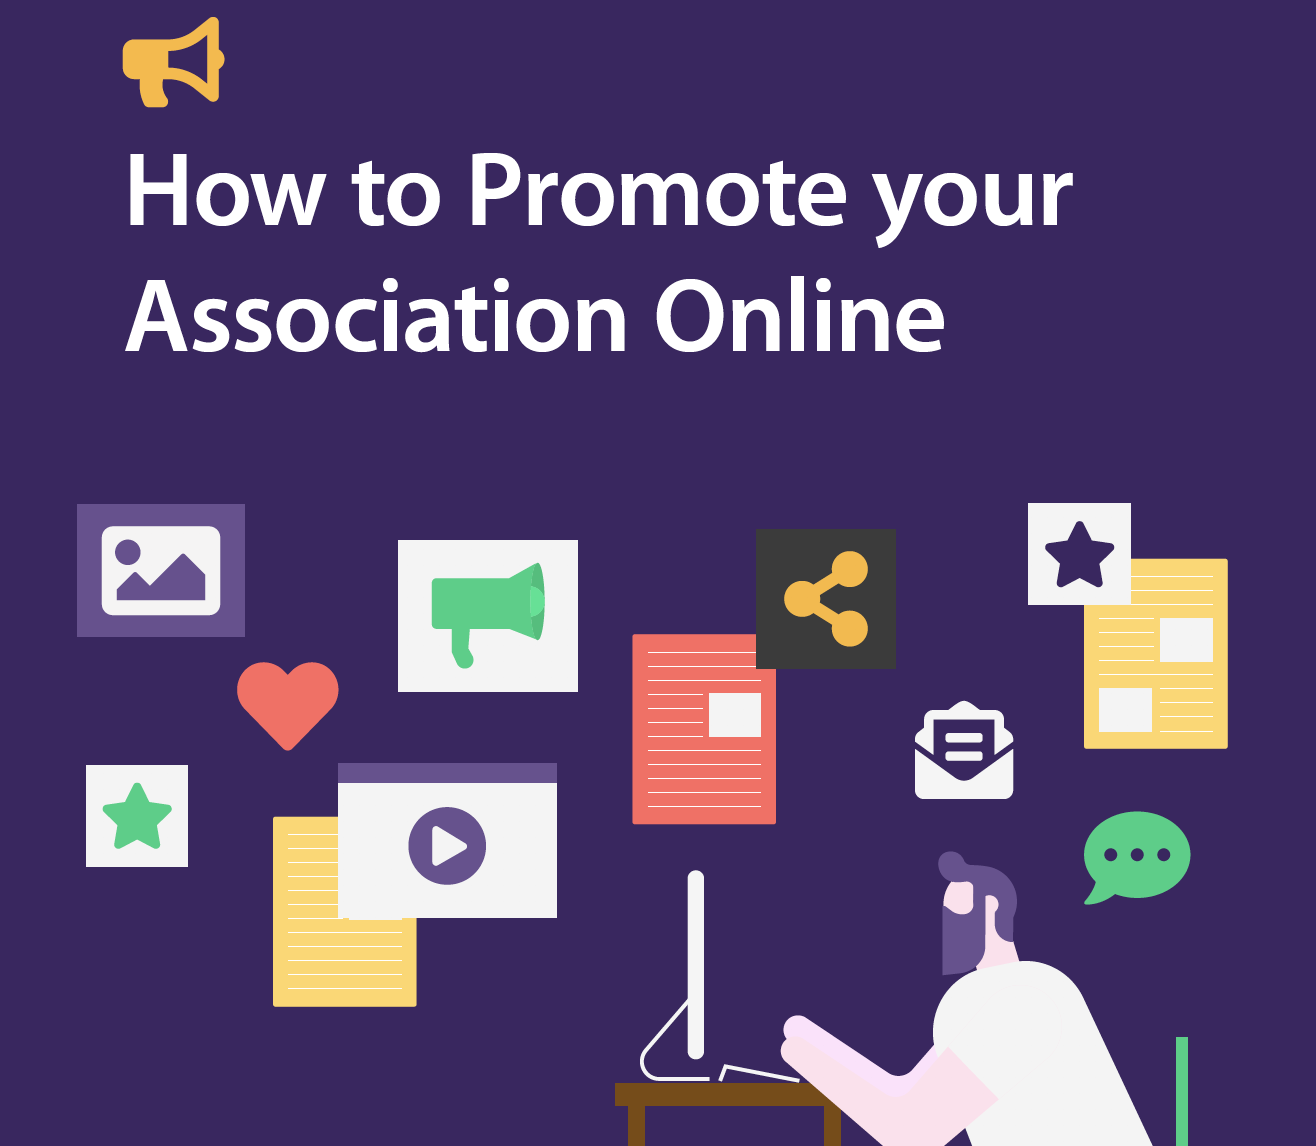 How to Promote Your Association Online